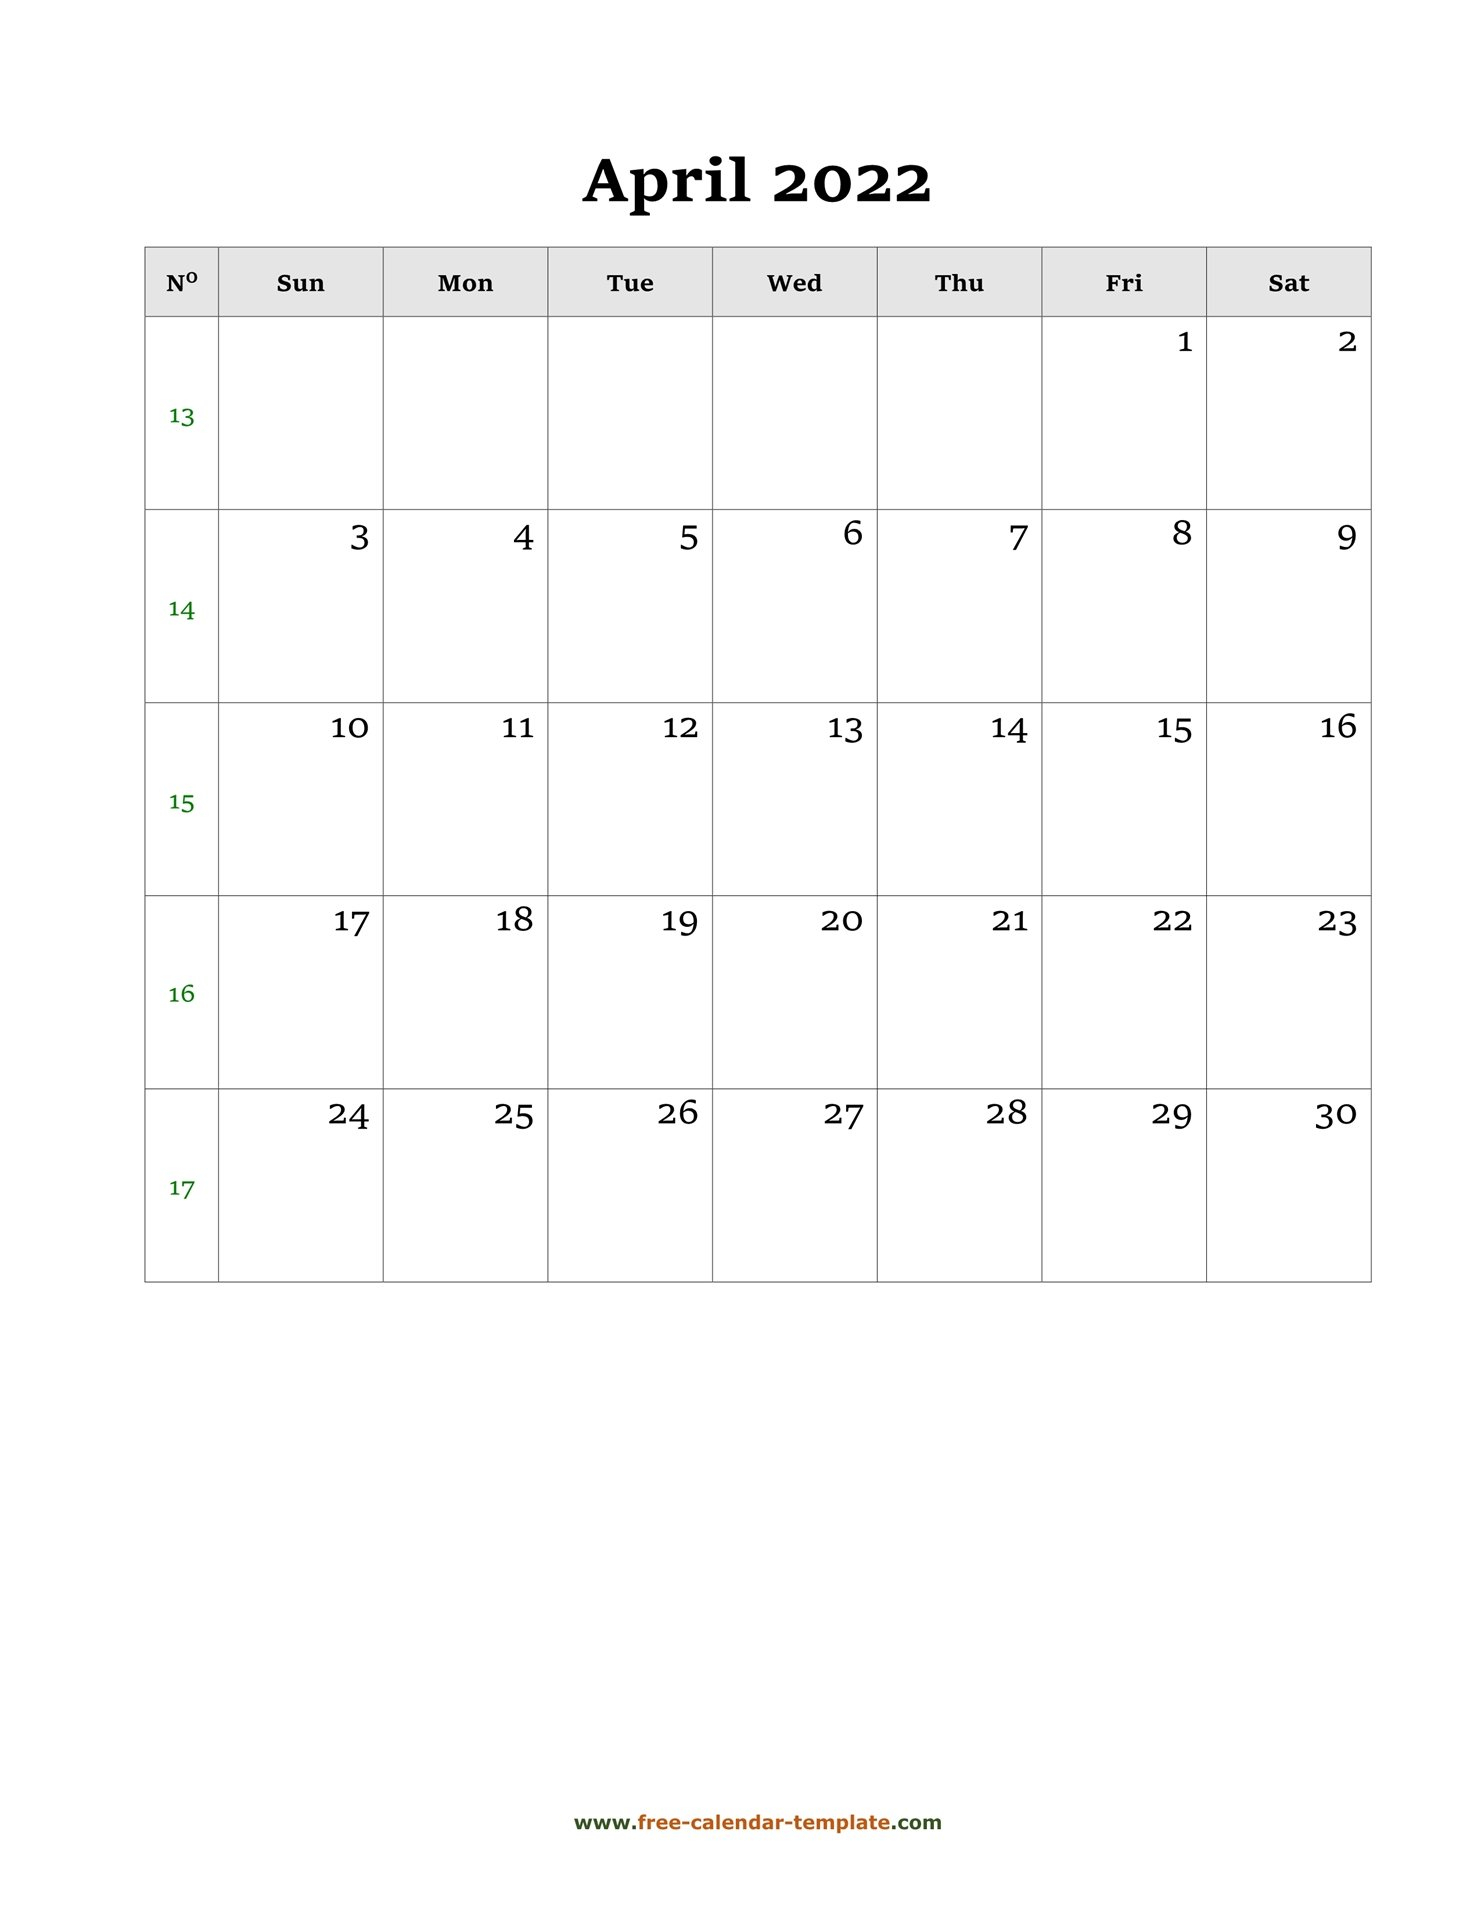 April Calendar 2022 Simple Design With Large Box On Each intended for Printable Calendar April 2022 Free